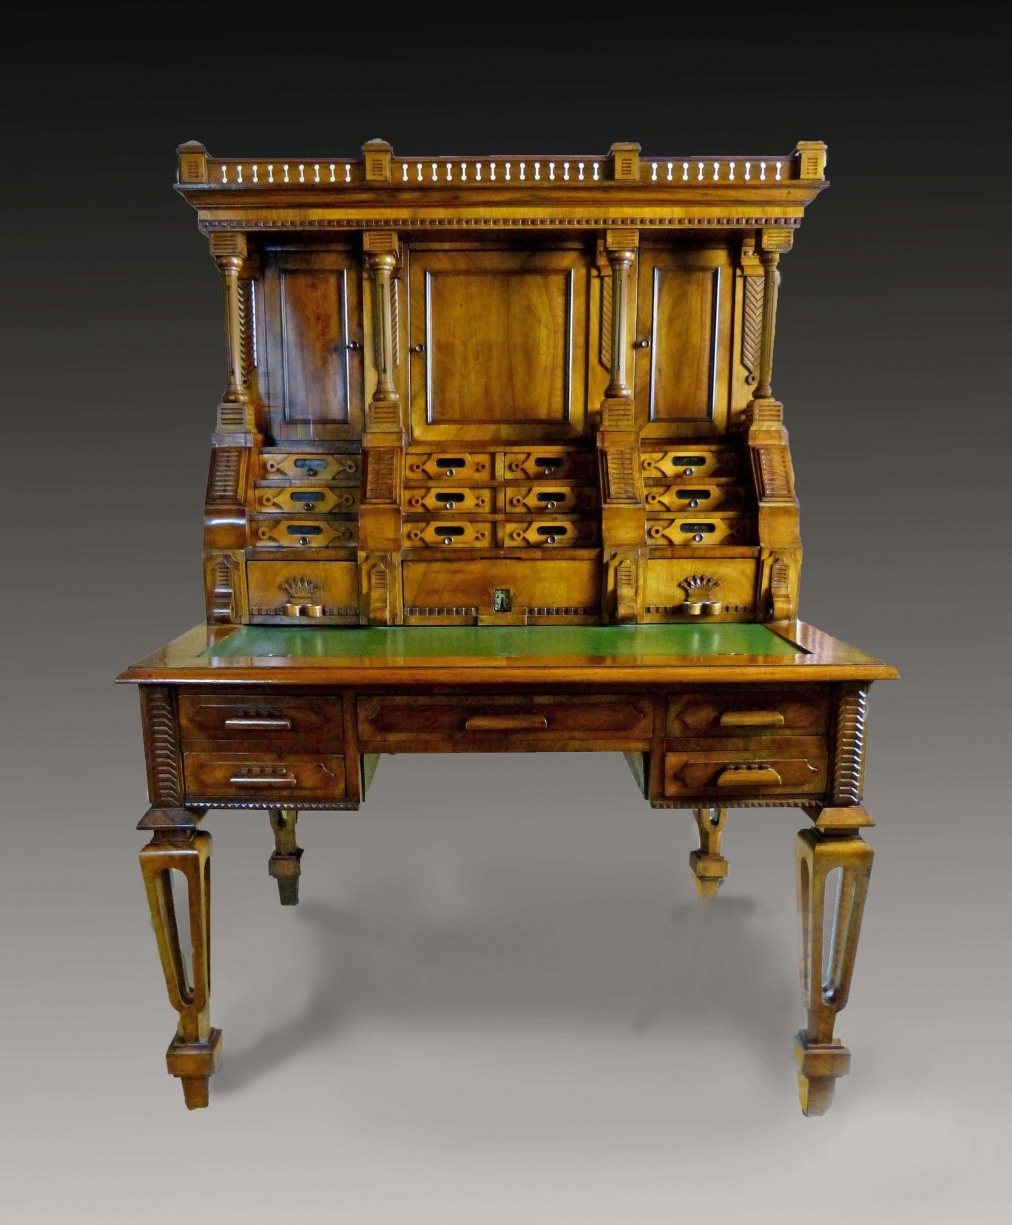 Antique Desk With Secret Compartments Price 49 140